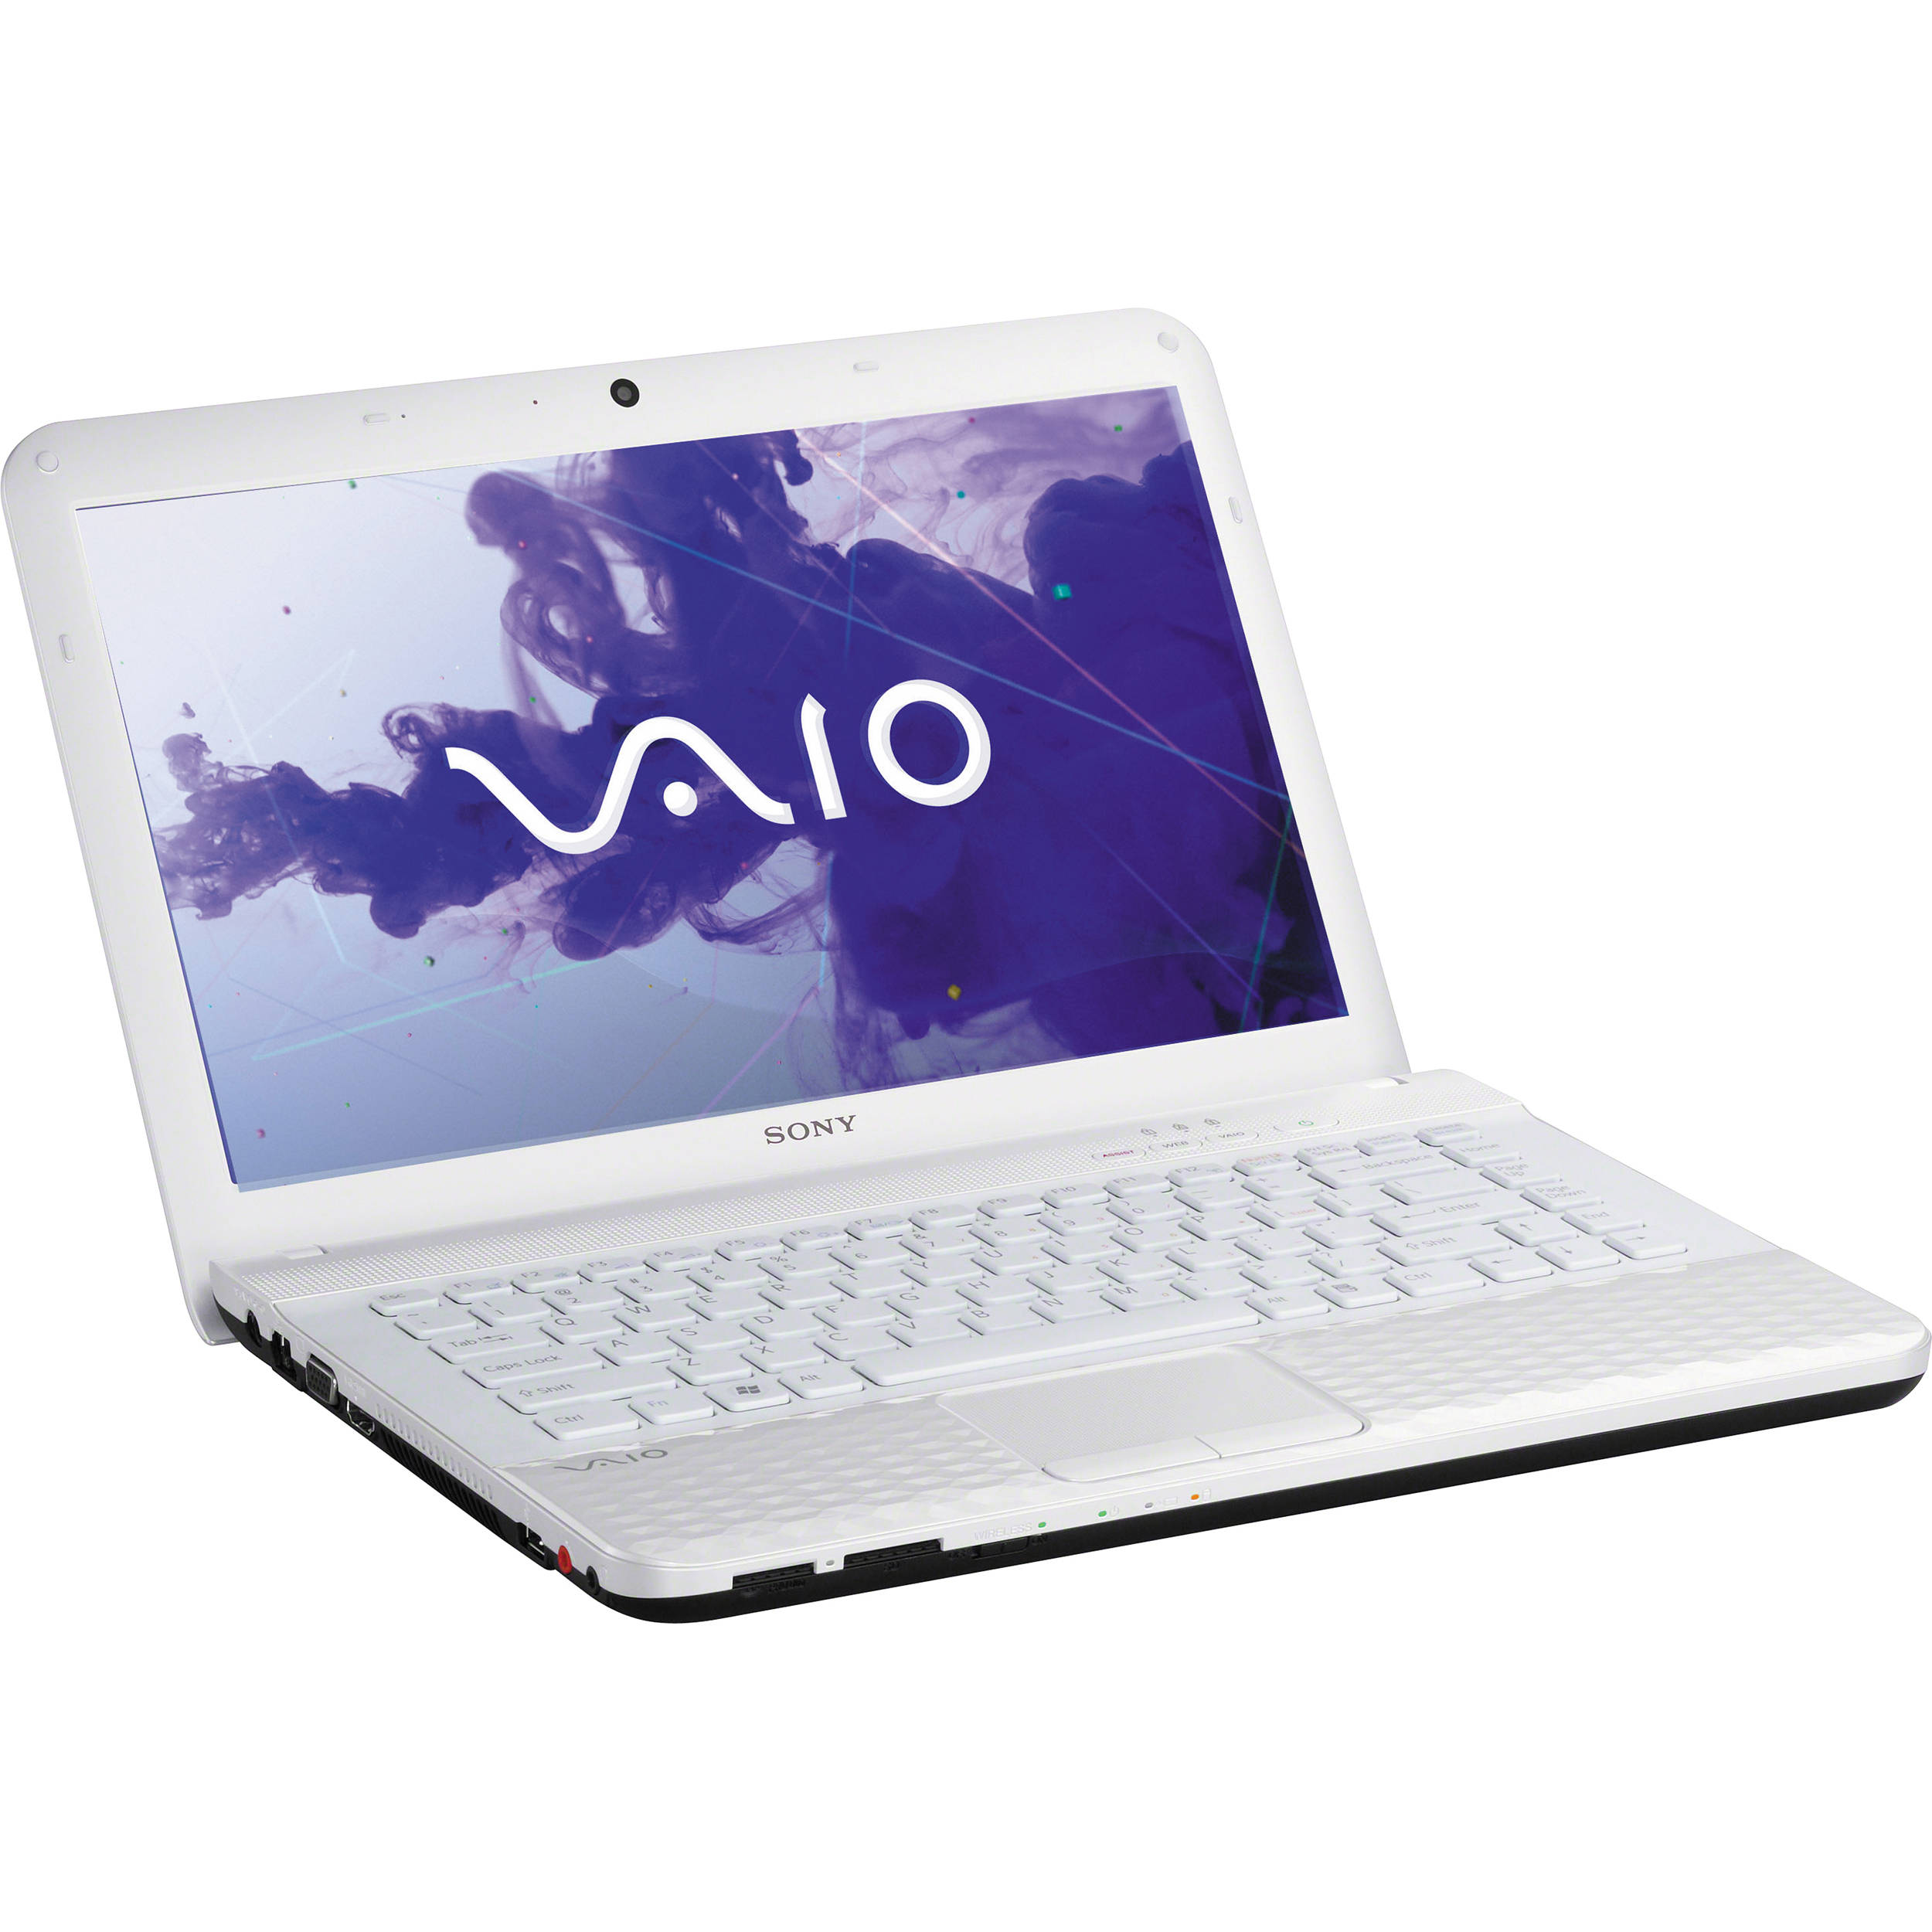 Sony Vaio VPCEG25FX Synaptics TouchPad Treiber Windows XP